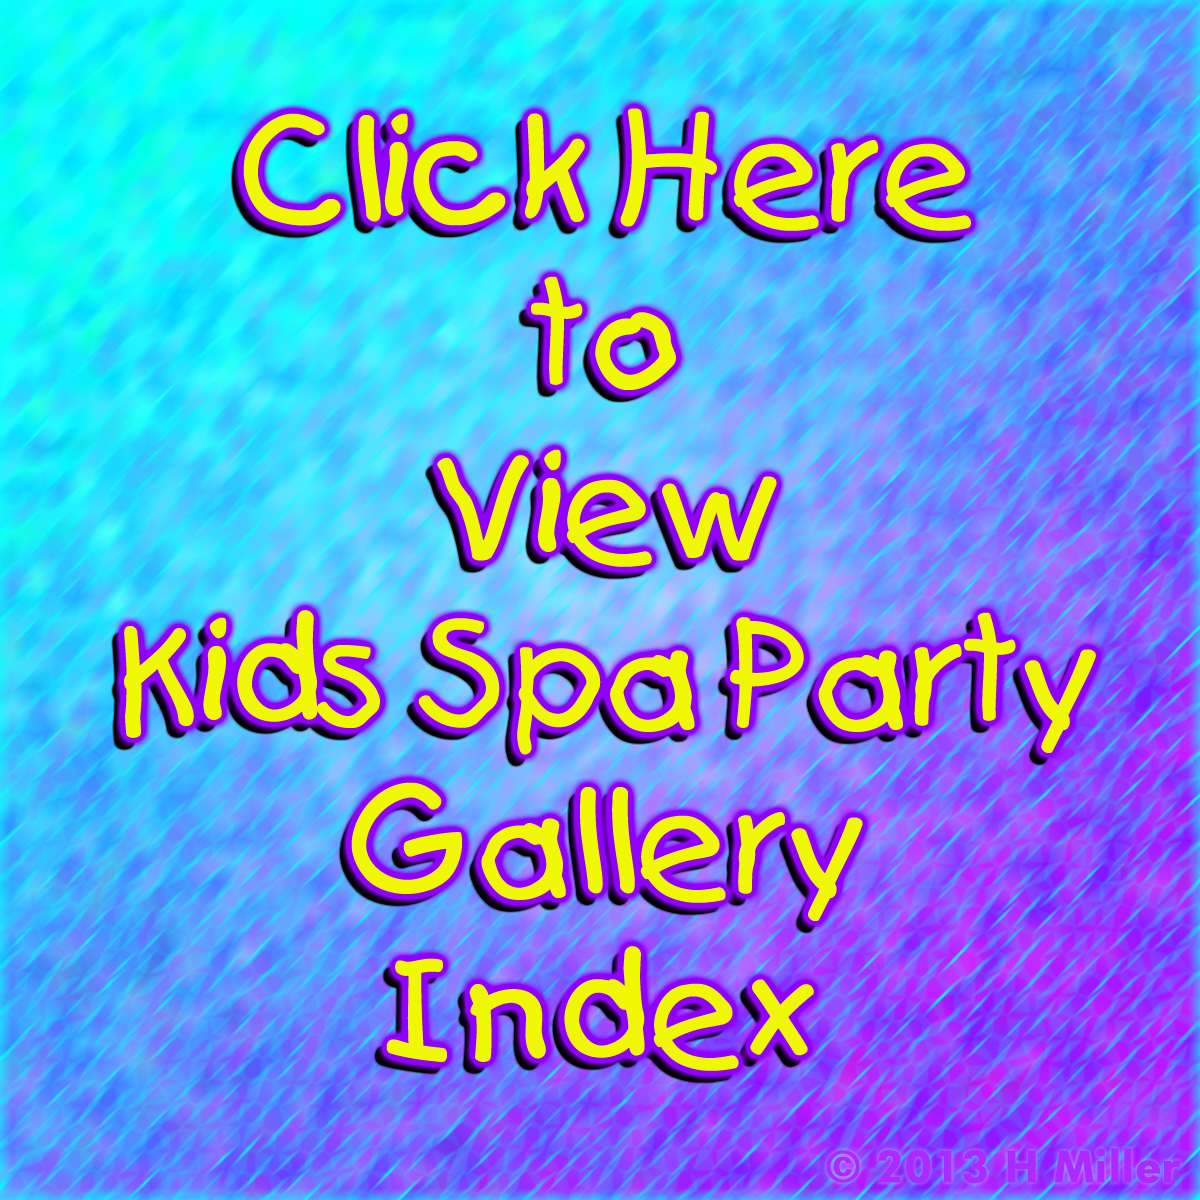 Kids Spa Parties Gallery